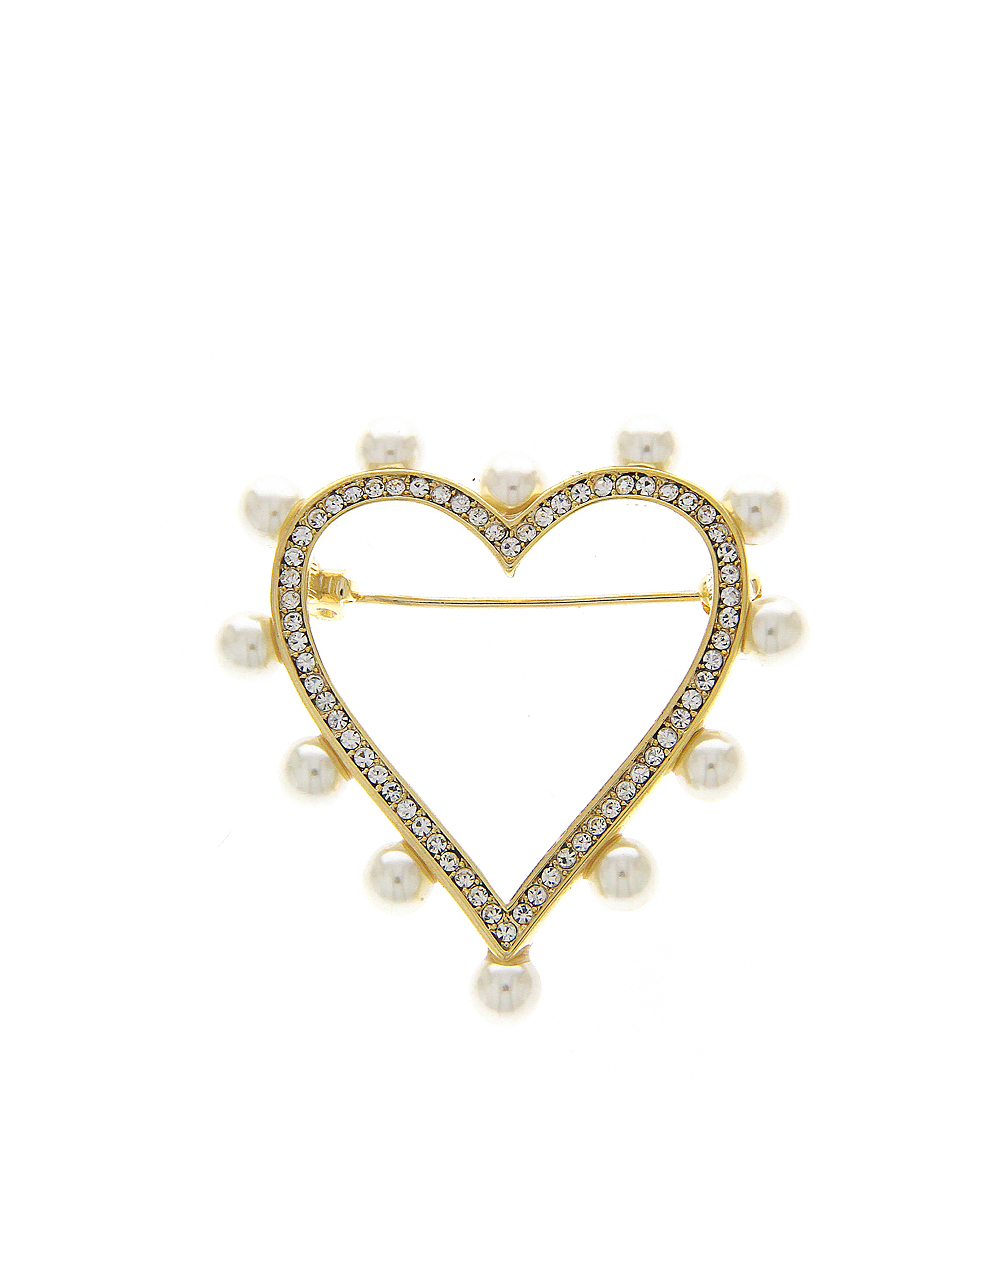 Gold Finish Heart Styled Brooch Pin